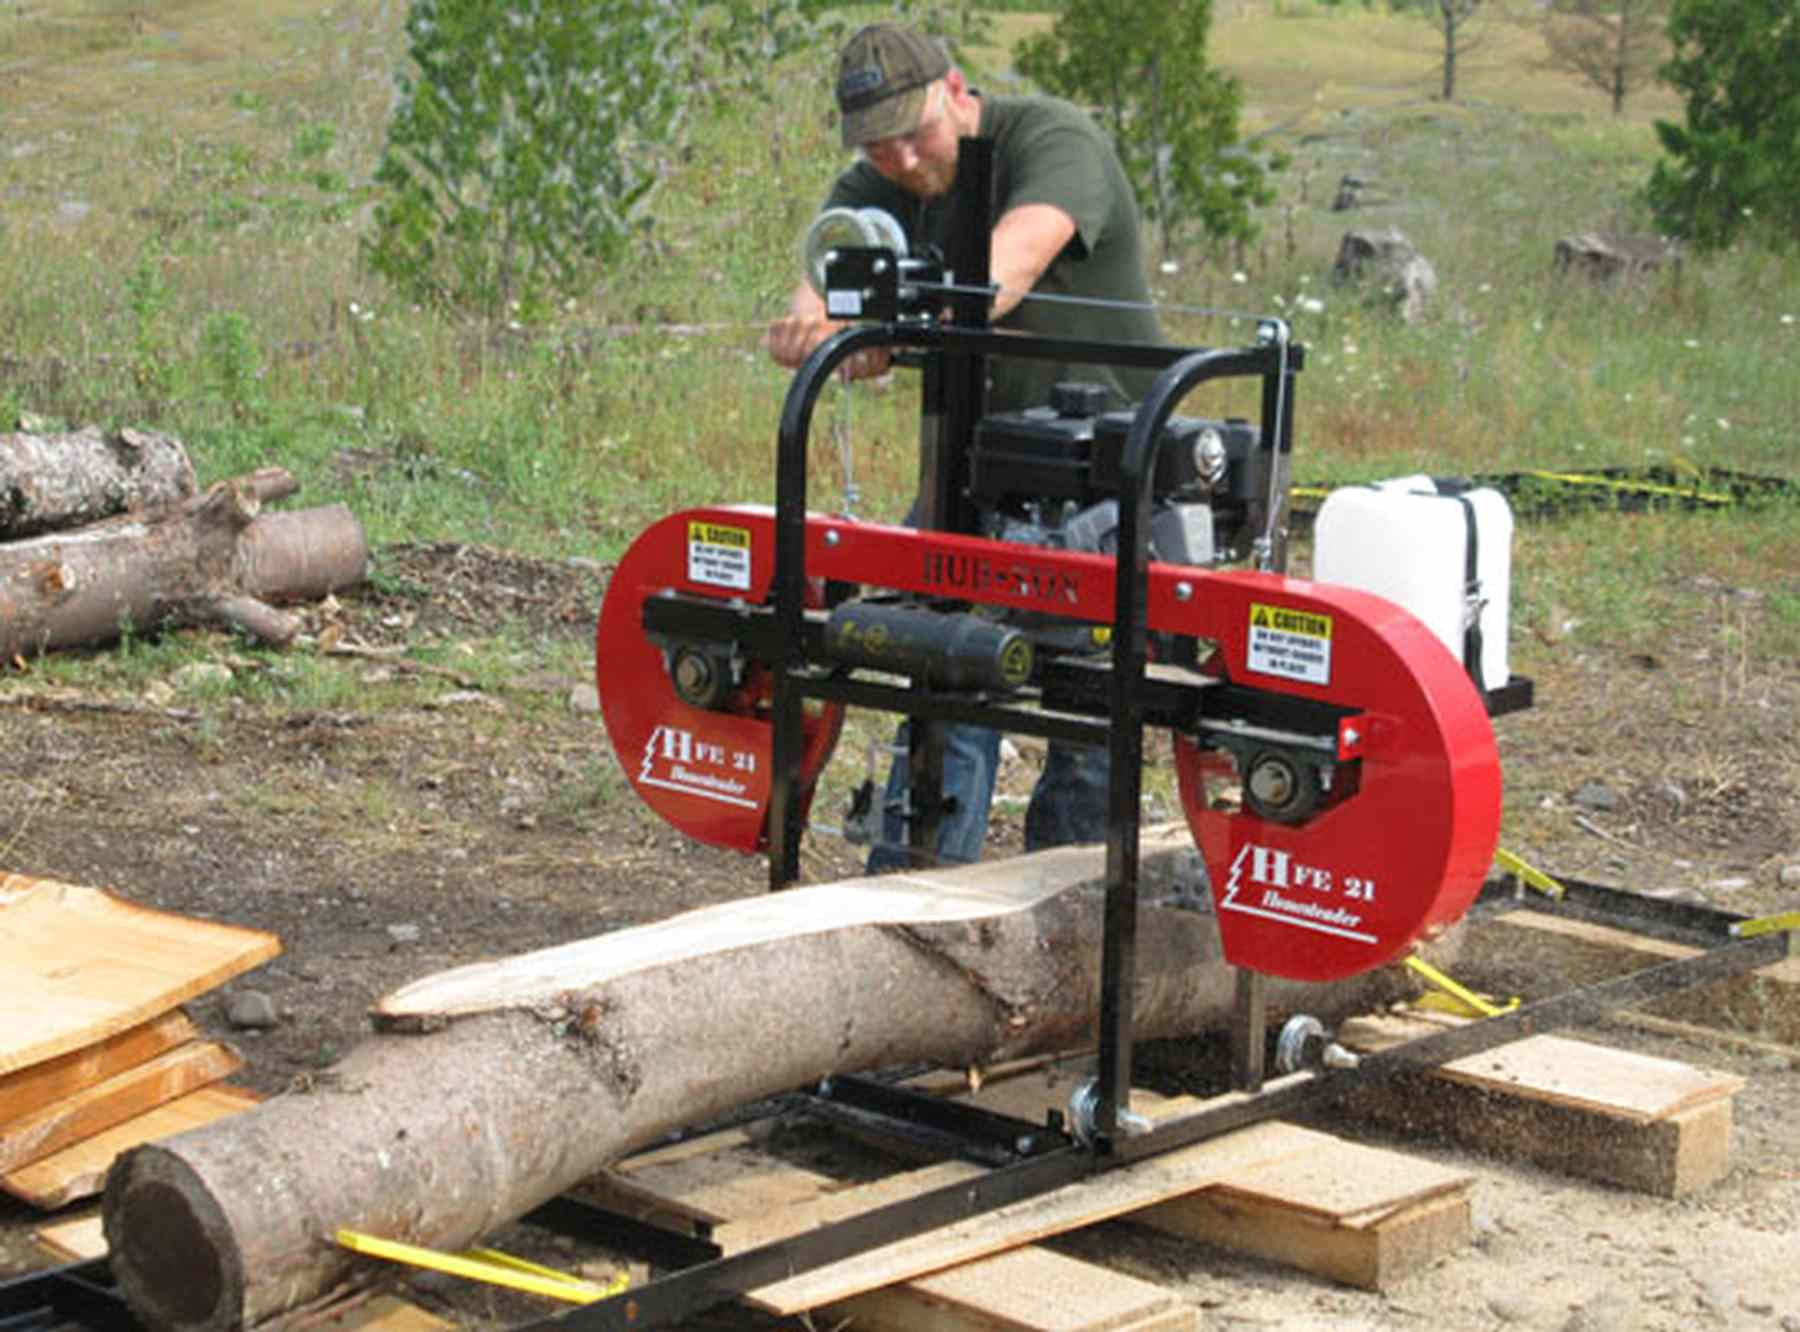 Man Working With A Portable Sawmill